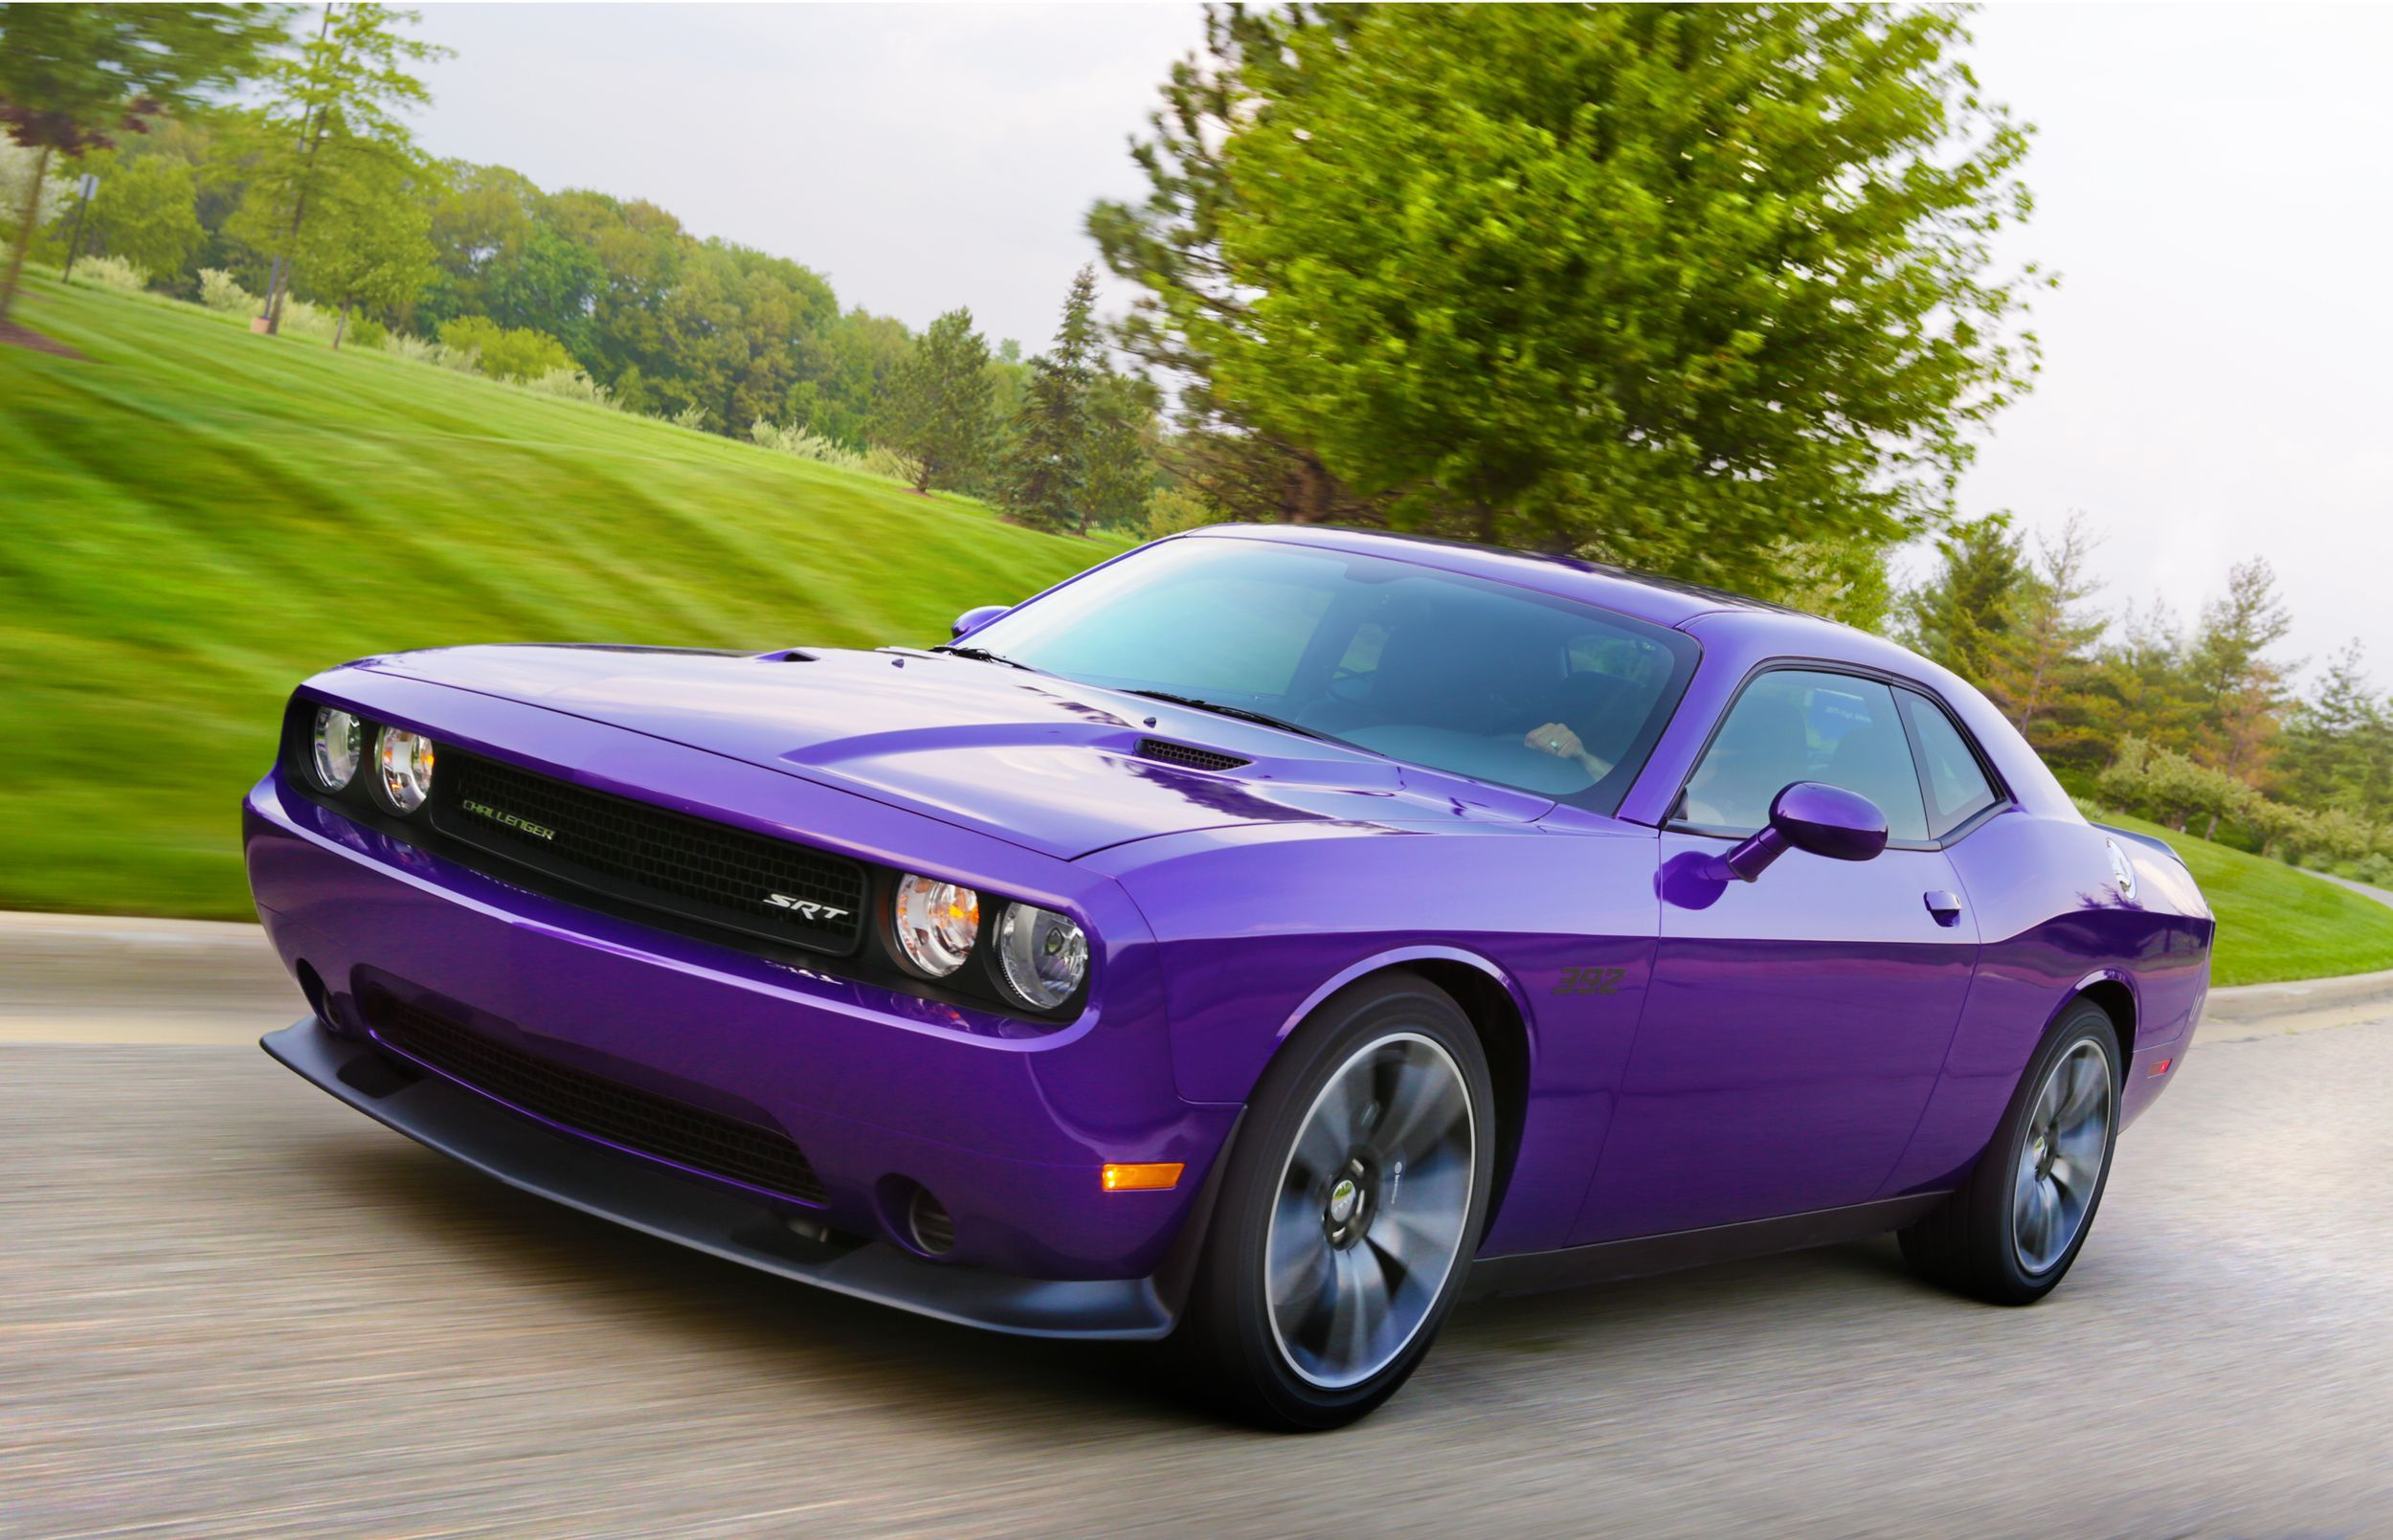 2015 challenger srt8 hellcat green. Black Bedroom Furniture Sets. Home Design Ideas